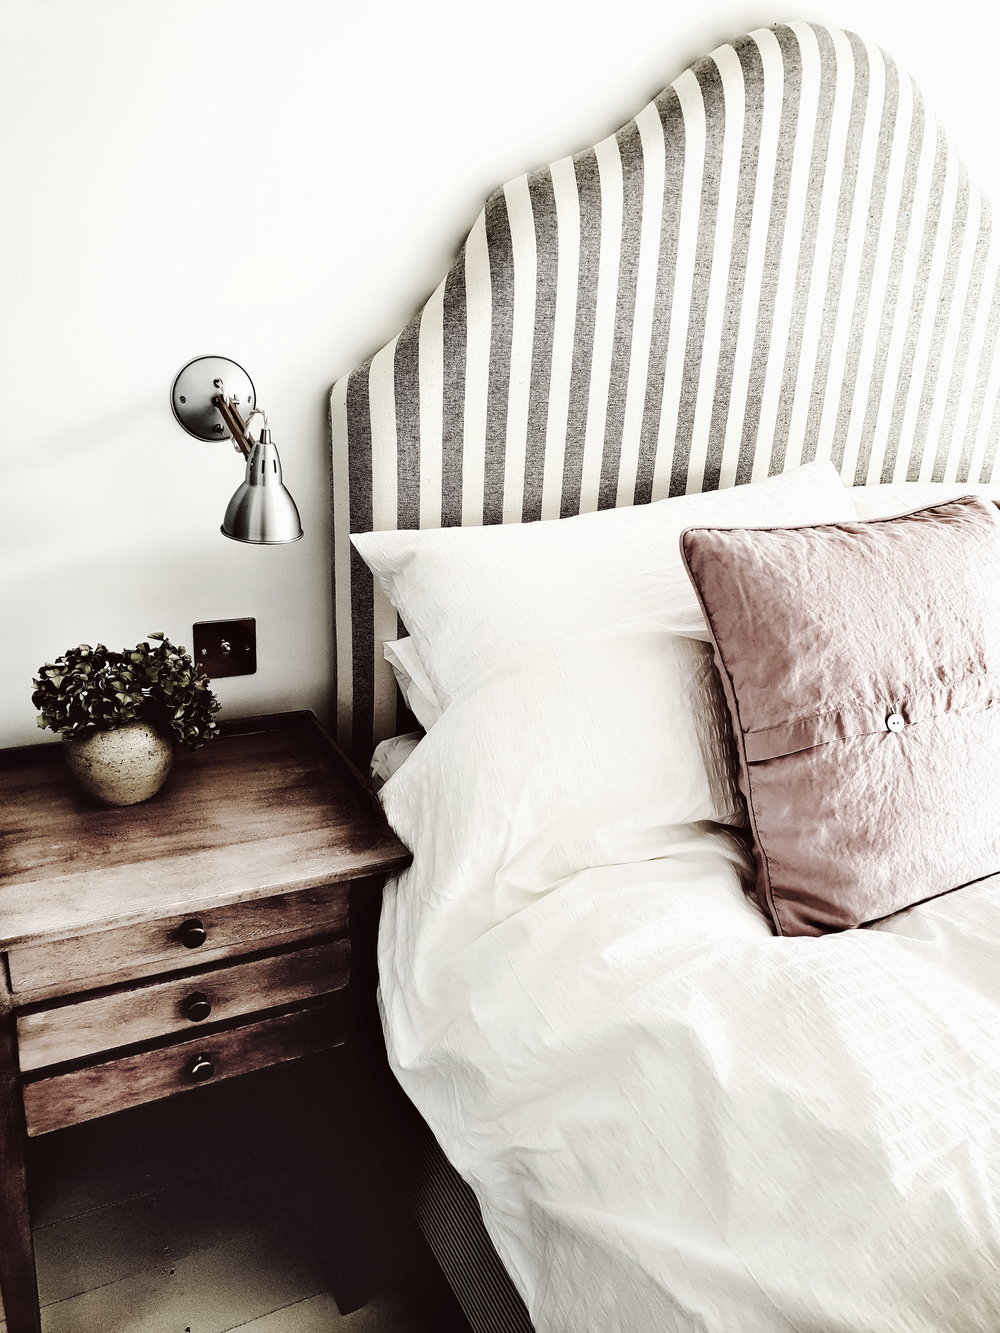 The upstairs ensuite bedroom with gorgeous striped headboard and exposed wooden beams